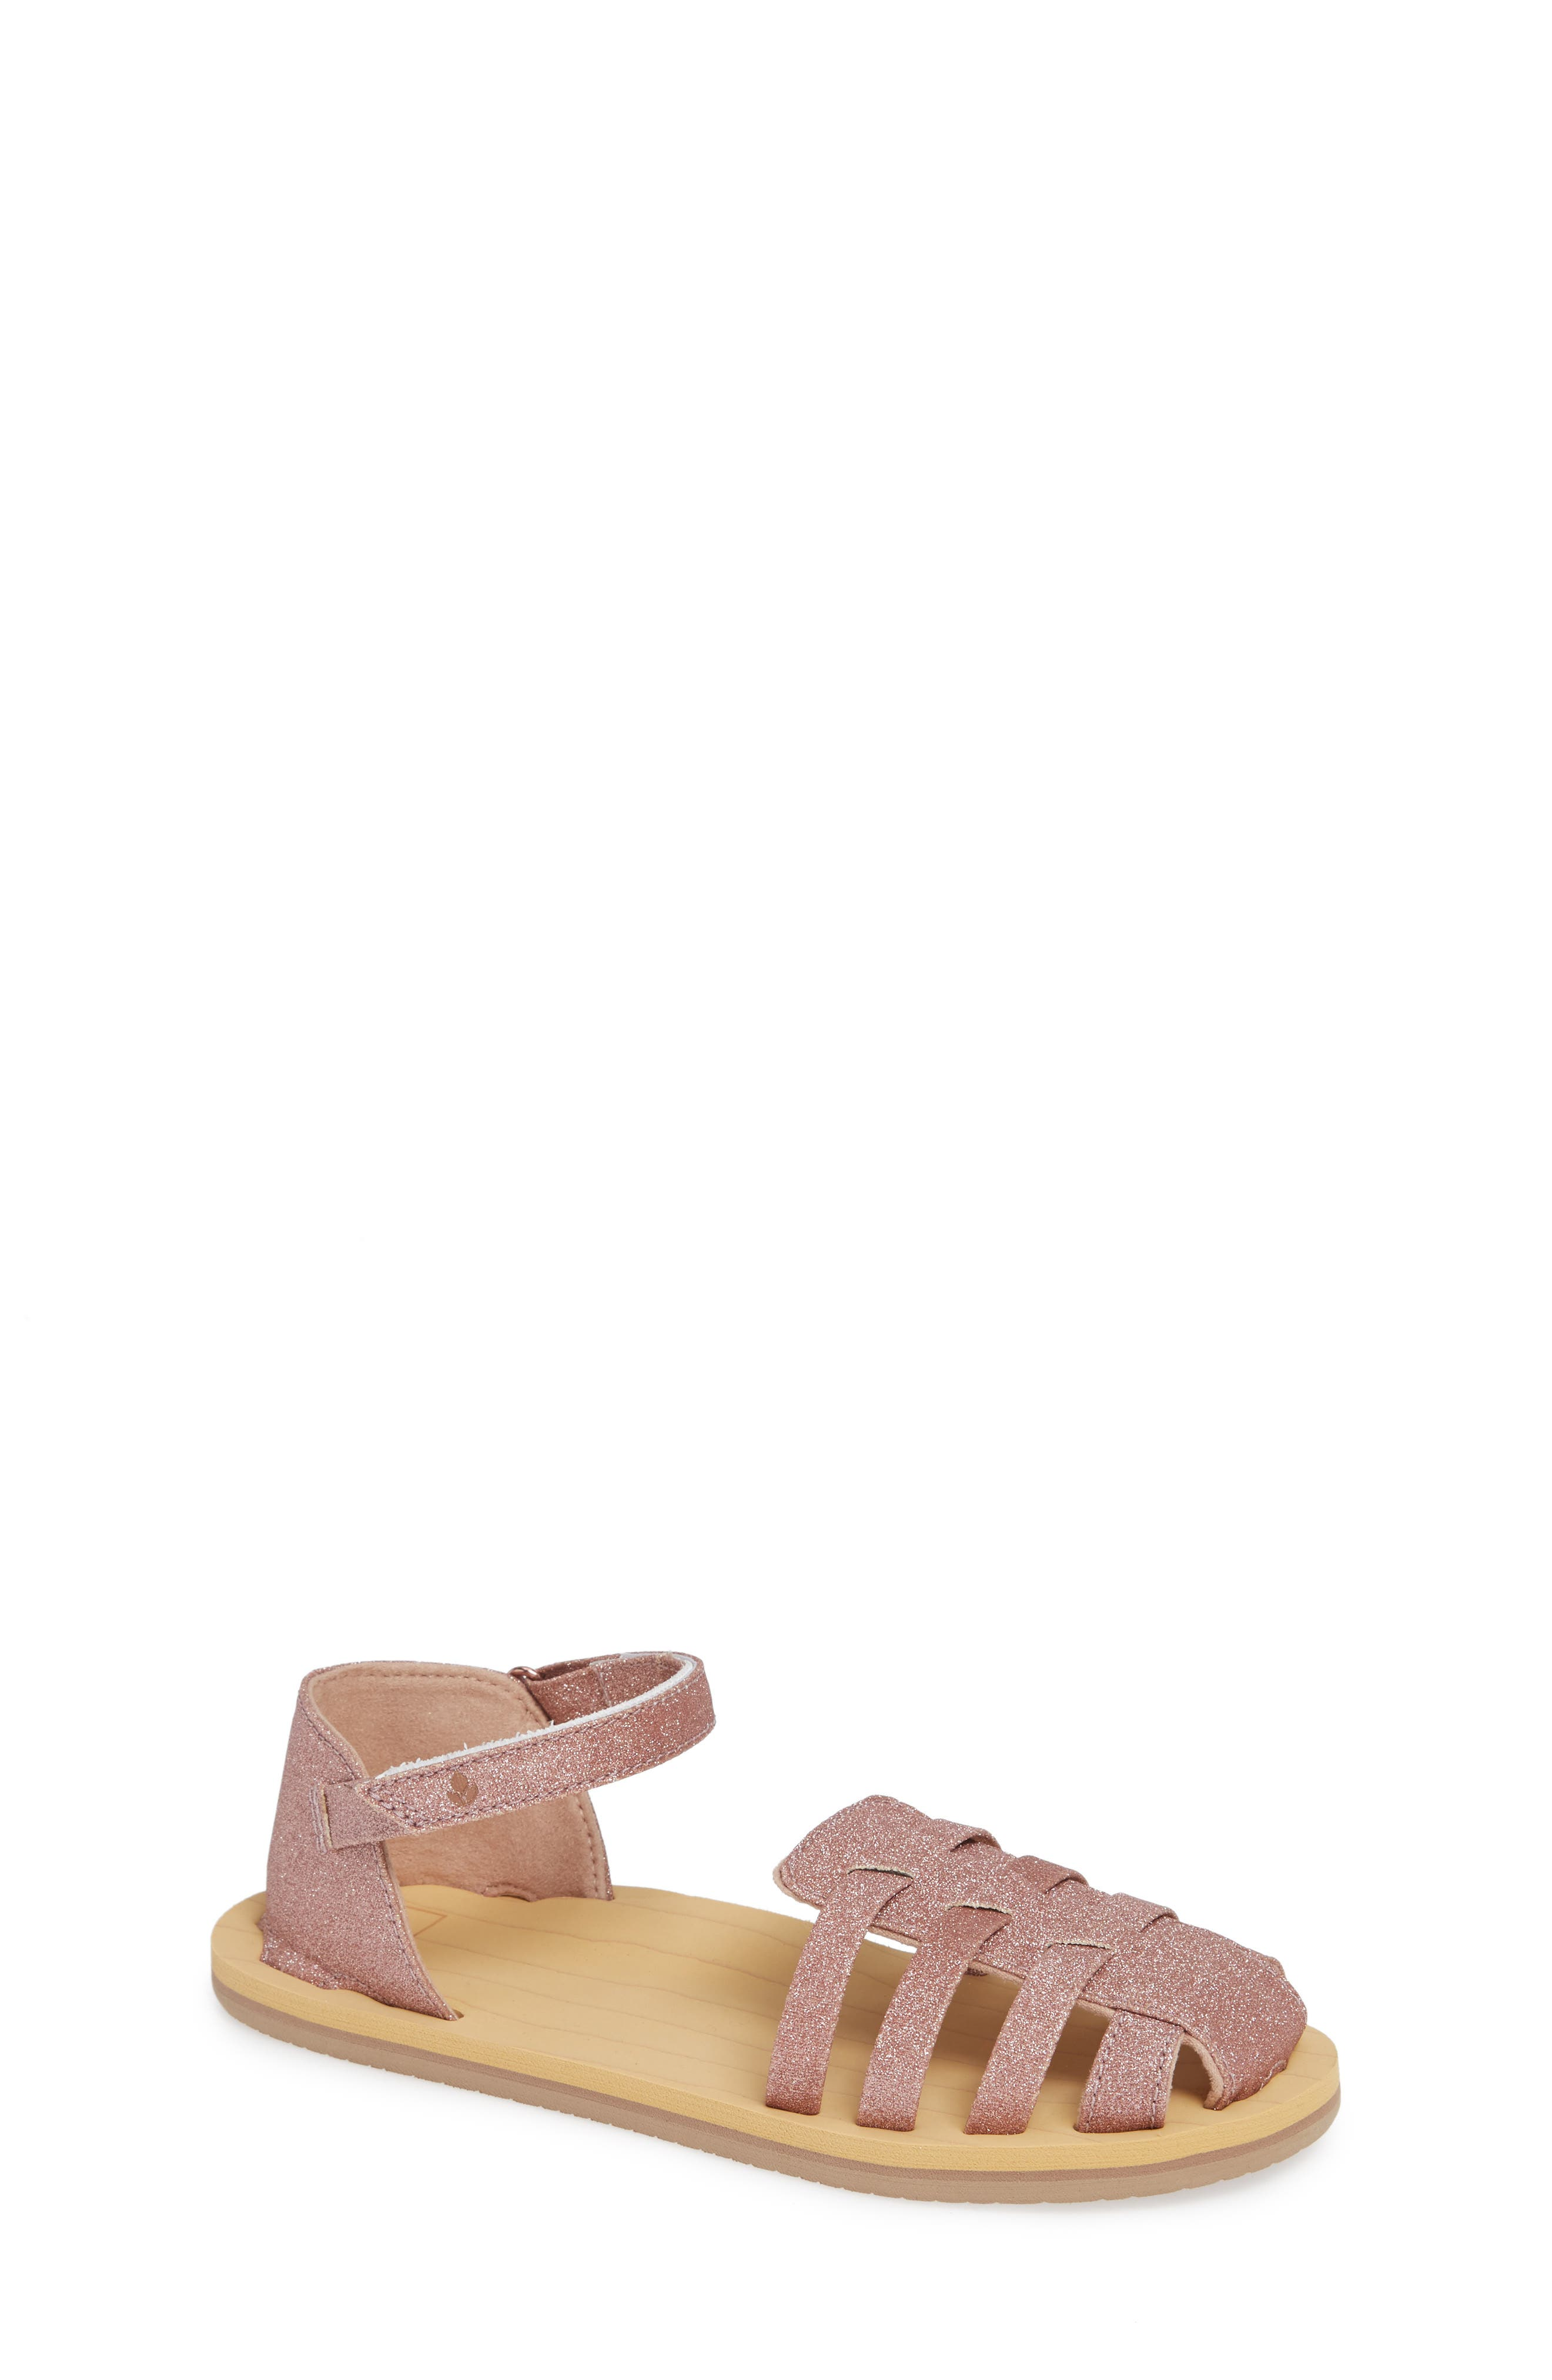 REEF, Little Reef Prep Glitter Fisherman Sandal, Main thumbnail 1, color, ROSE